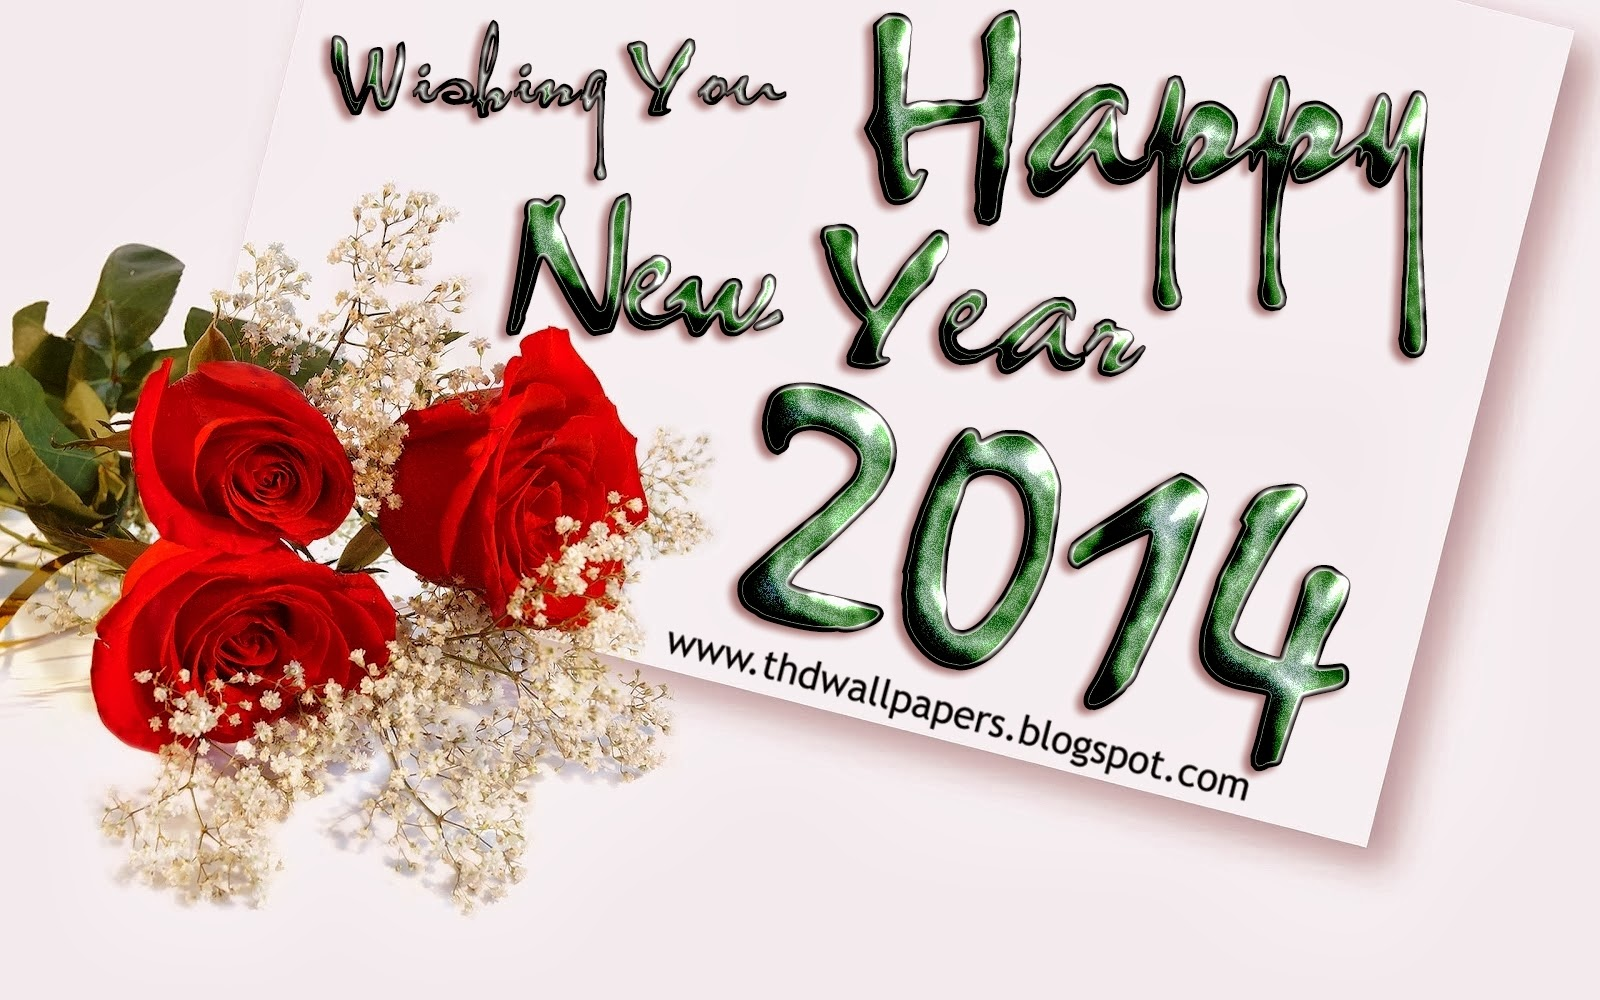 Happy new year wishes photos wallpapers 2014 latest images voltagebd Image collections